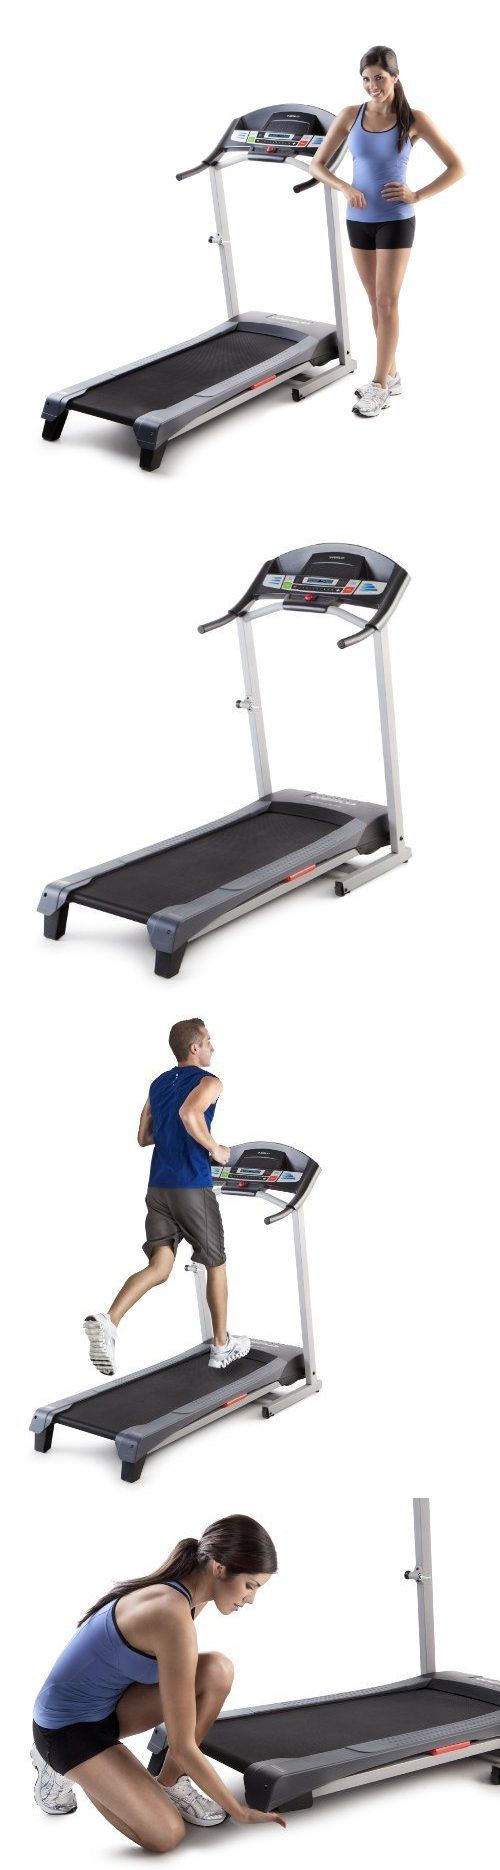 Aquatic Fitness Equipment 158922: Electric Treadmill Exercise Running Fitness Gym Cardio Incline BUY IT NOW ONLY: $386.97